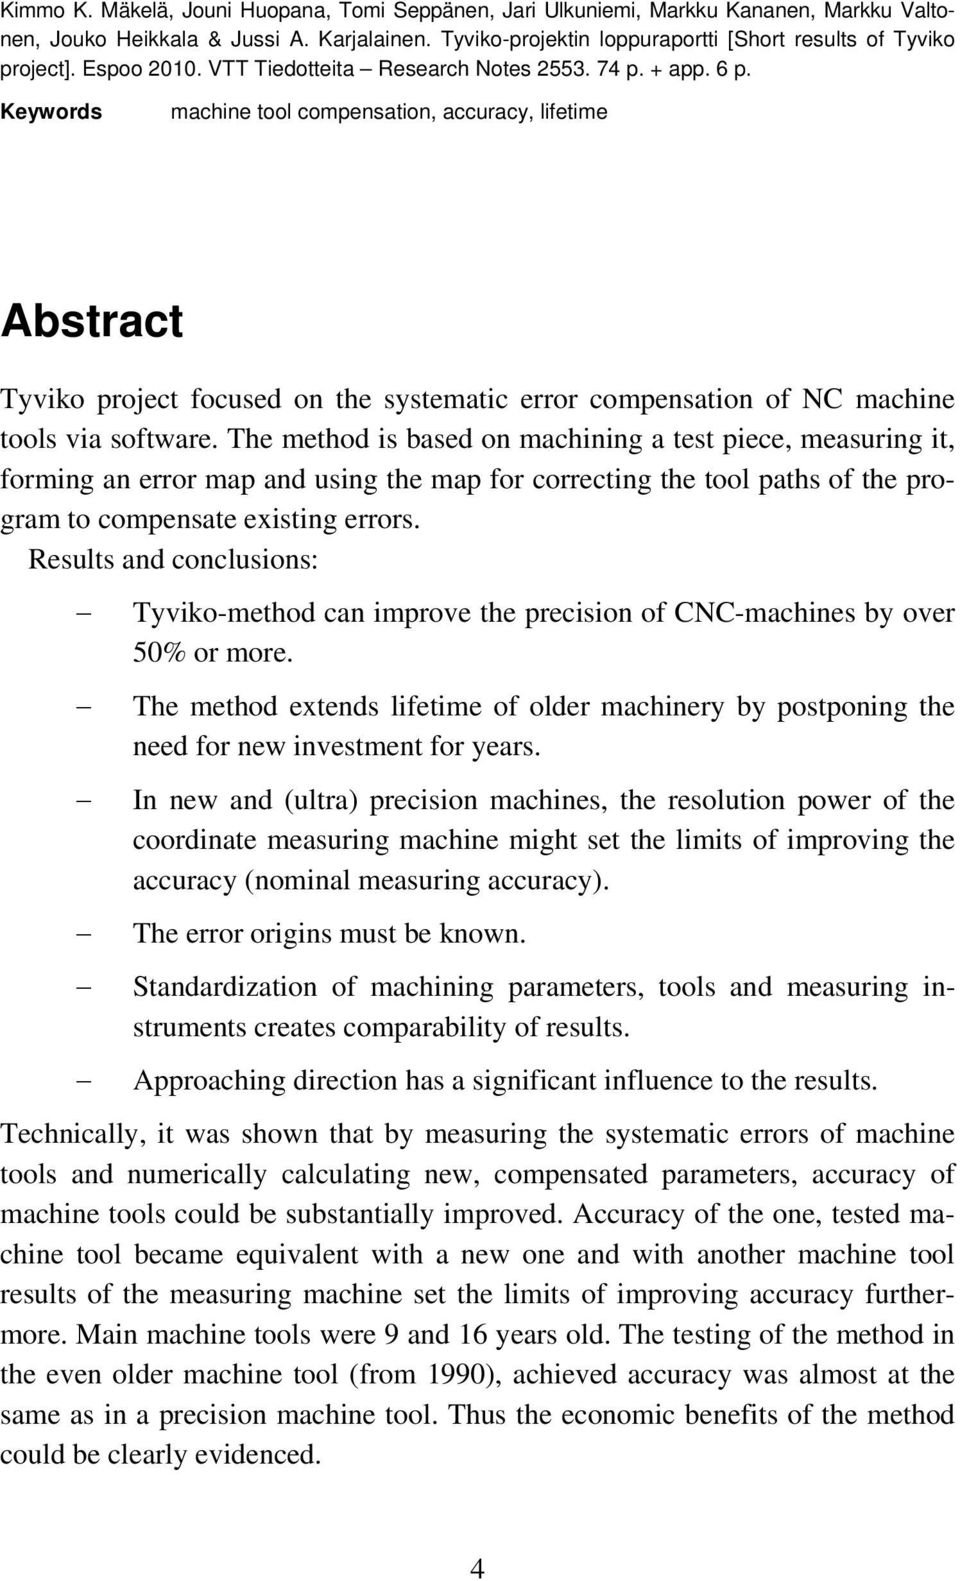 Keywords machine tool compensation, accuracy, lifetime Abstract Tyviko project focused on the systematic error compensation of NC machine tools via software.